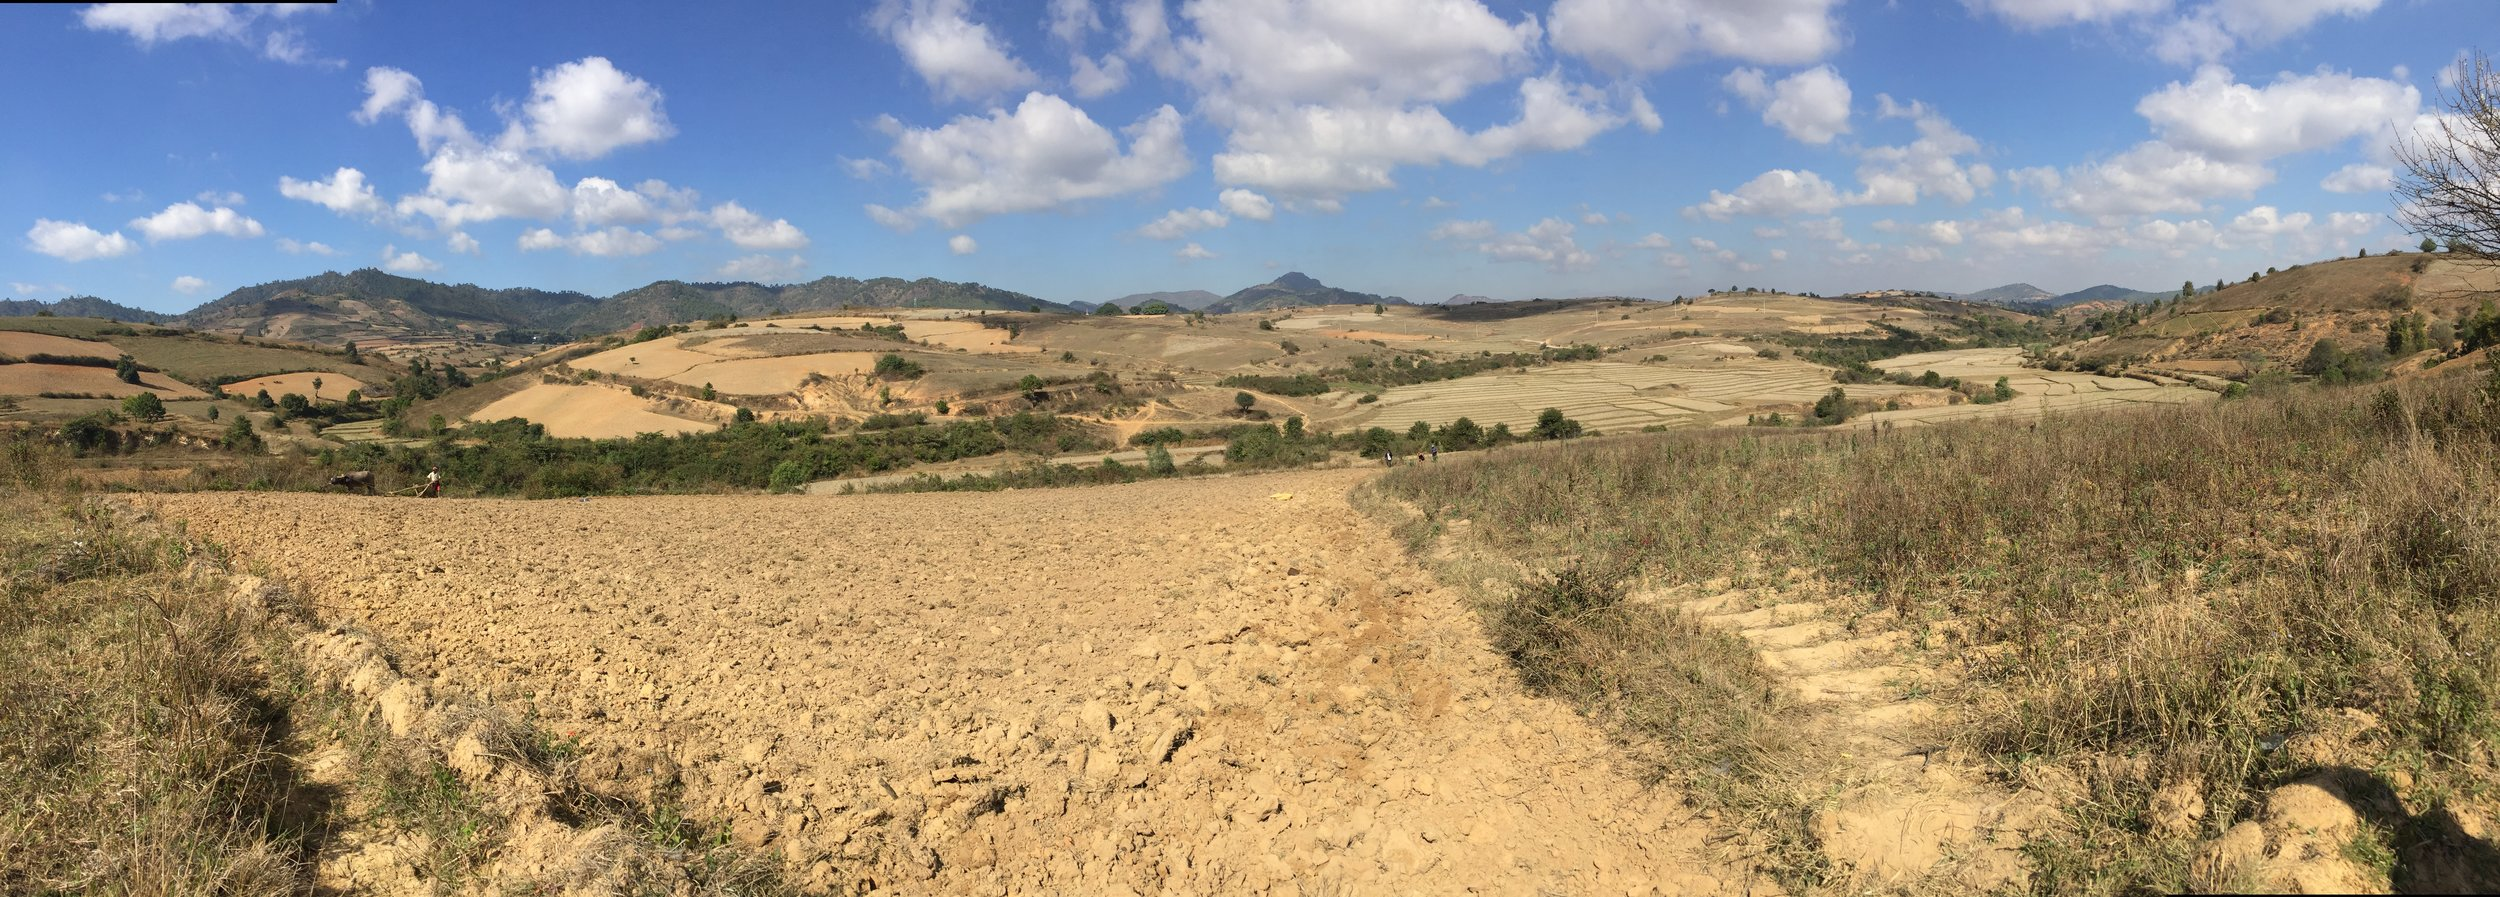 Views of Shan State, on the trail to Inle Lake.